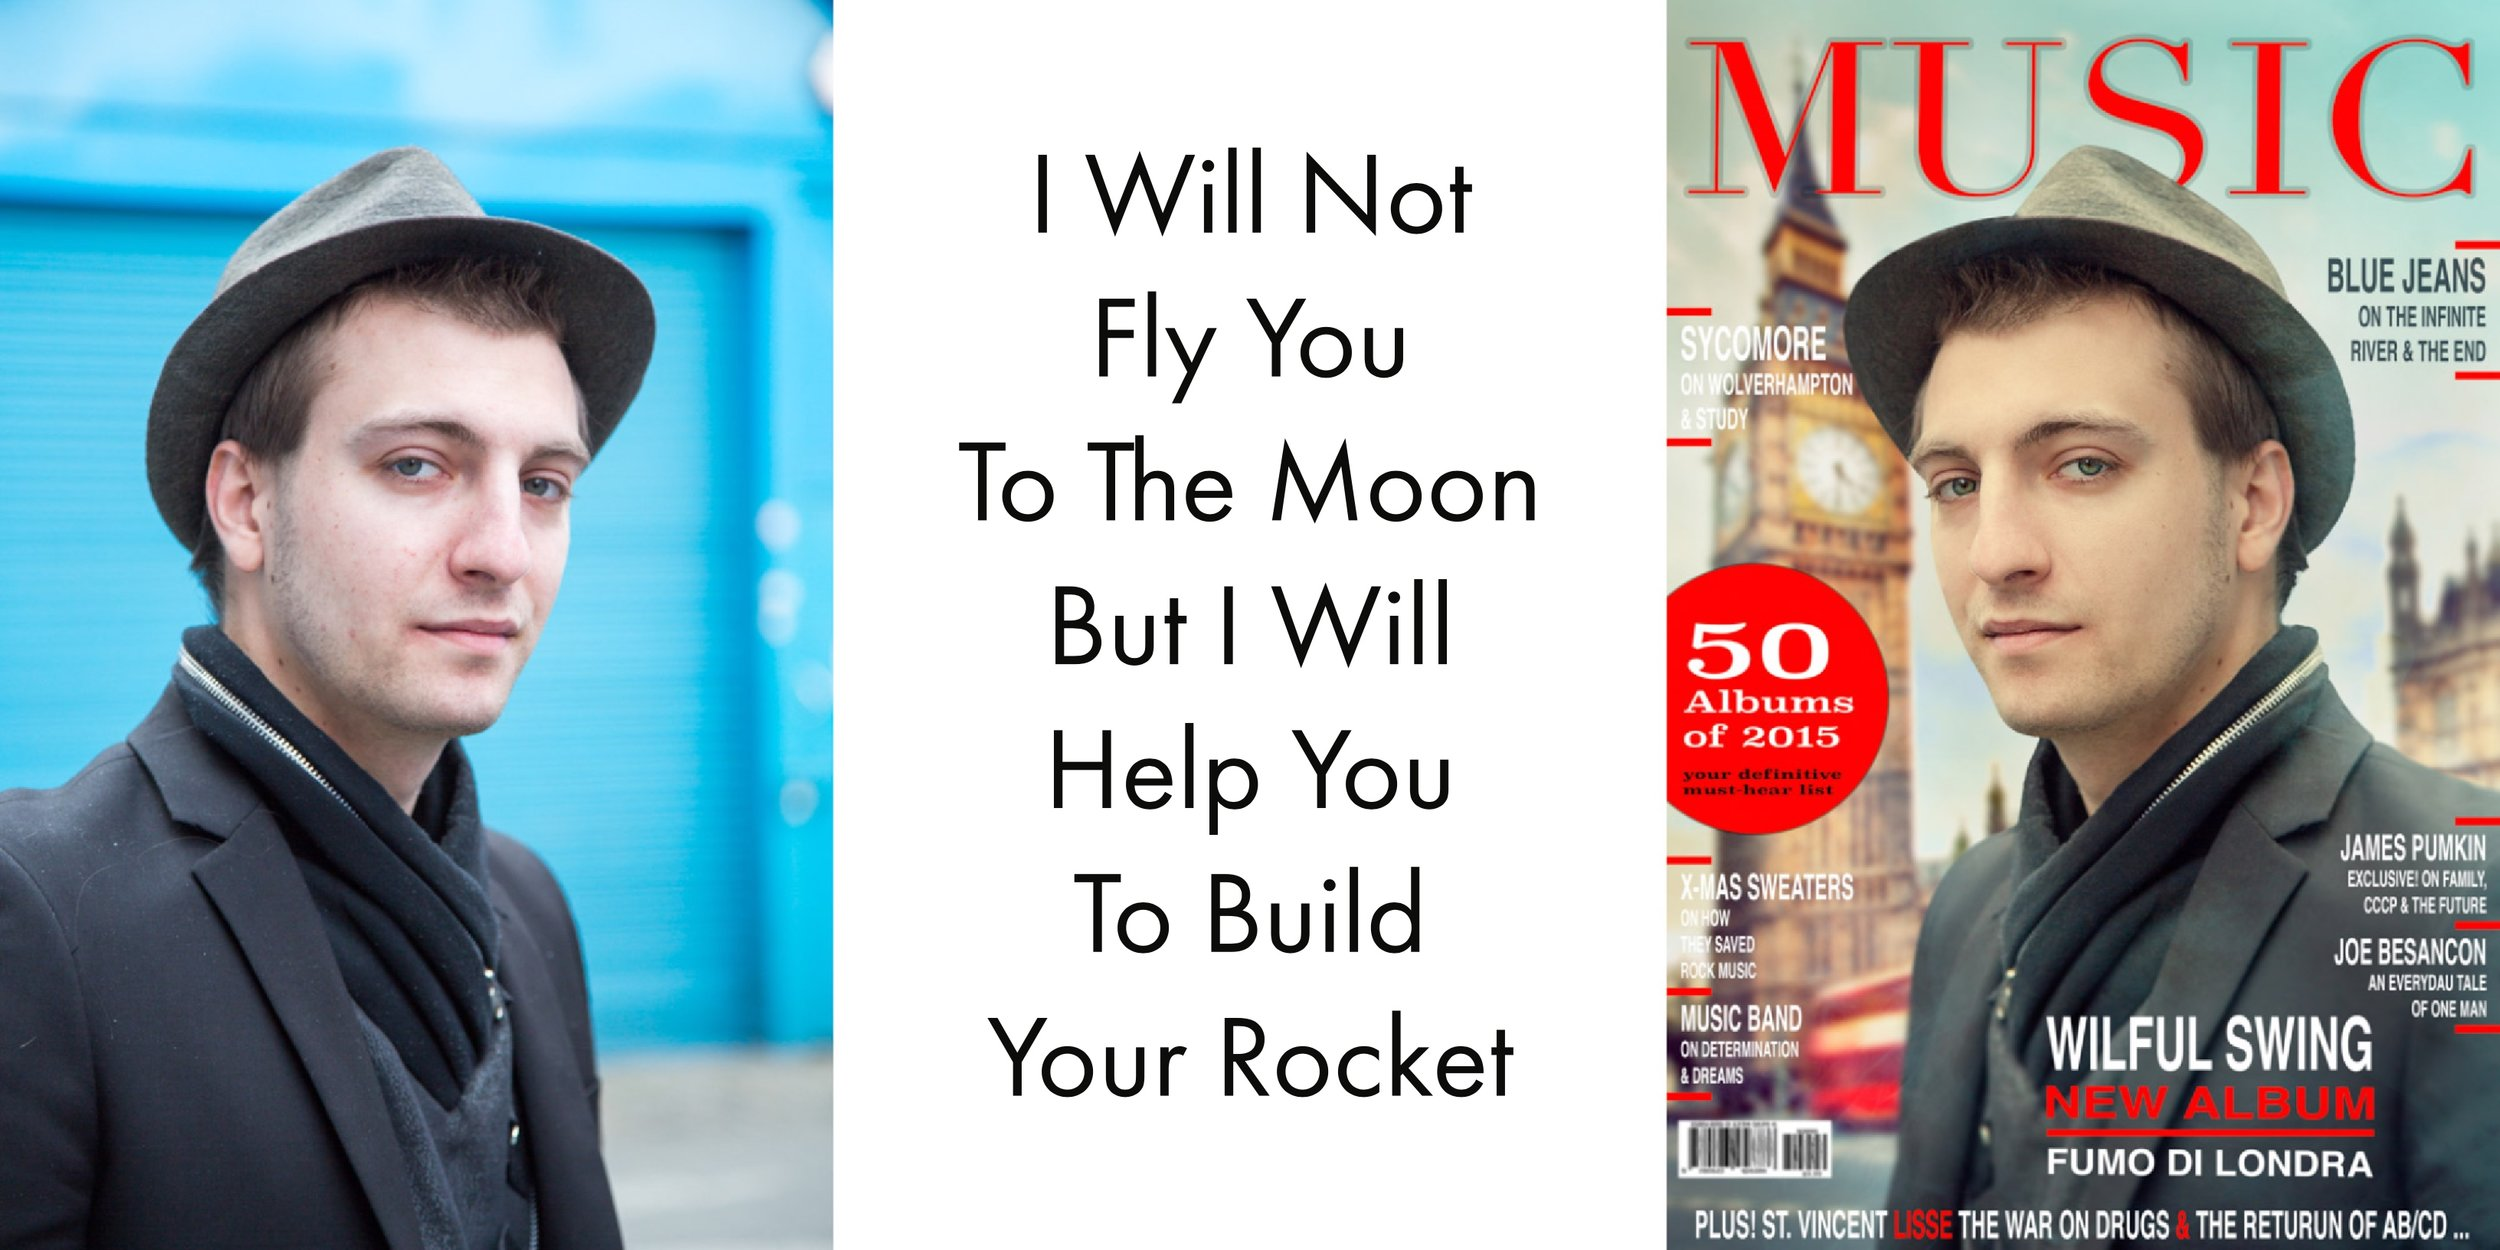 I Will Not Fly You To The Moon, But I Will Help You To Build Your Rocket